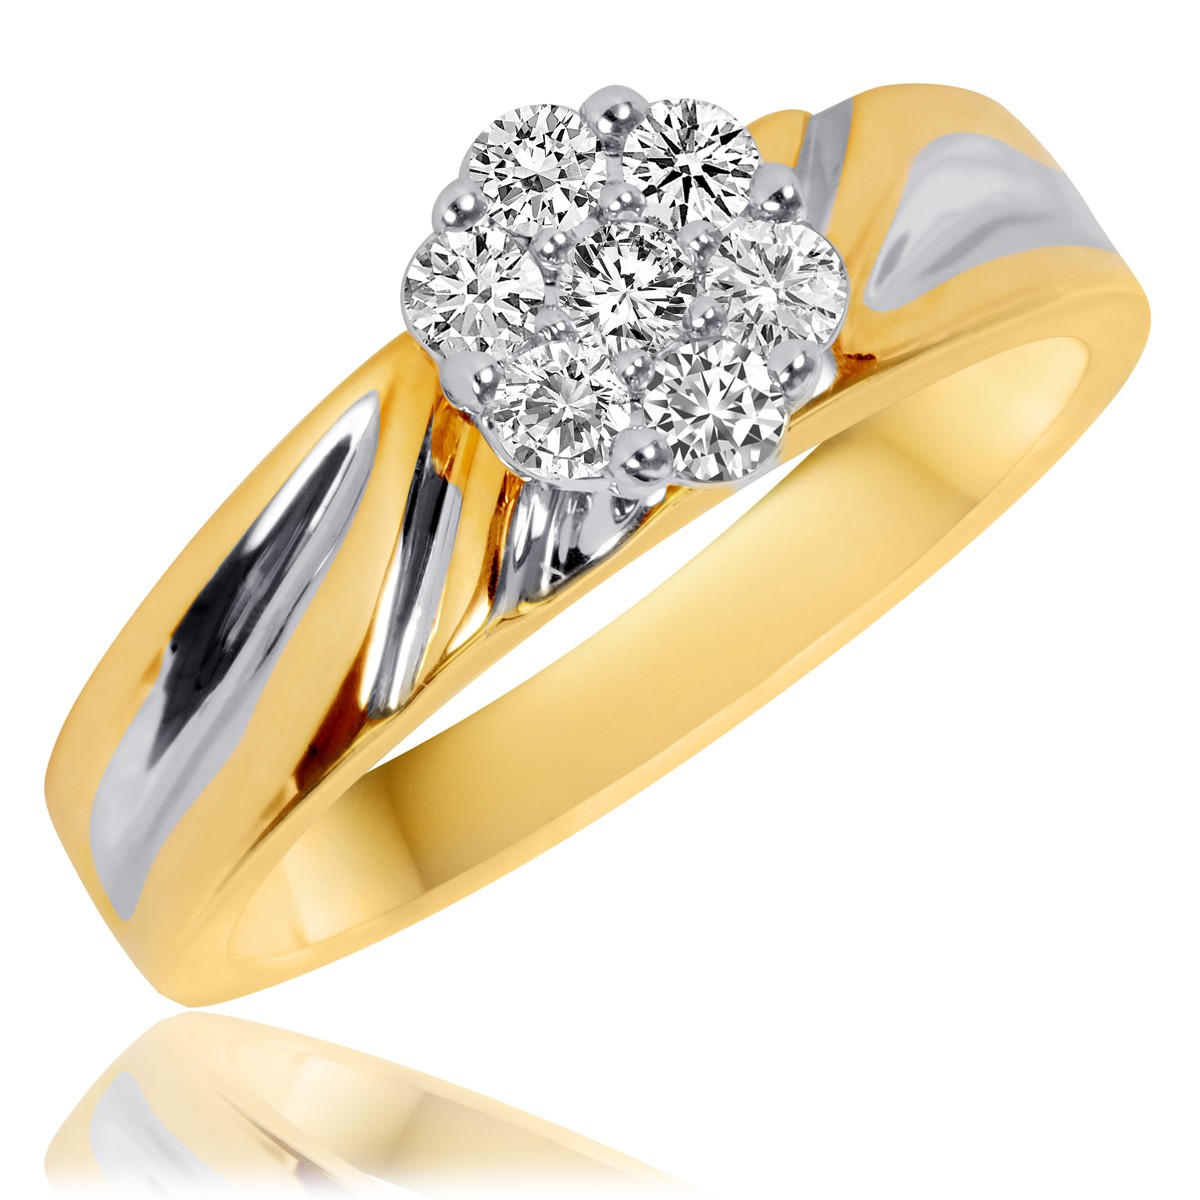 1/3 CT. T.W. Diamond Ladies' Engagement Ring 10K Yellow Gold